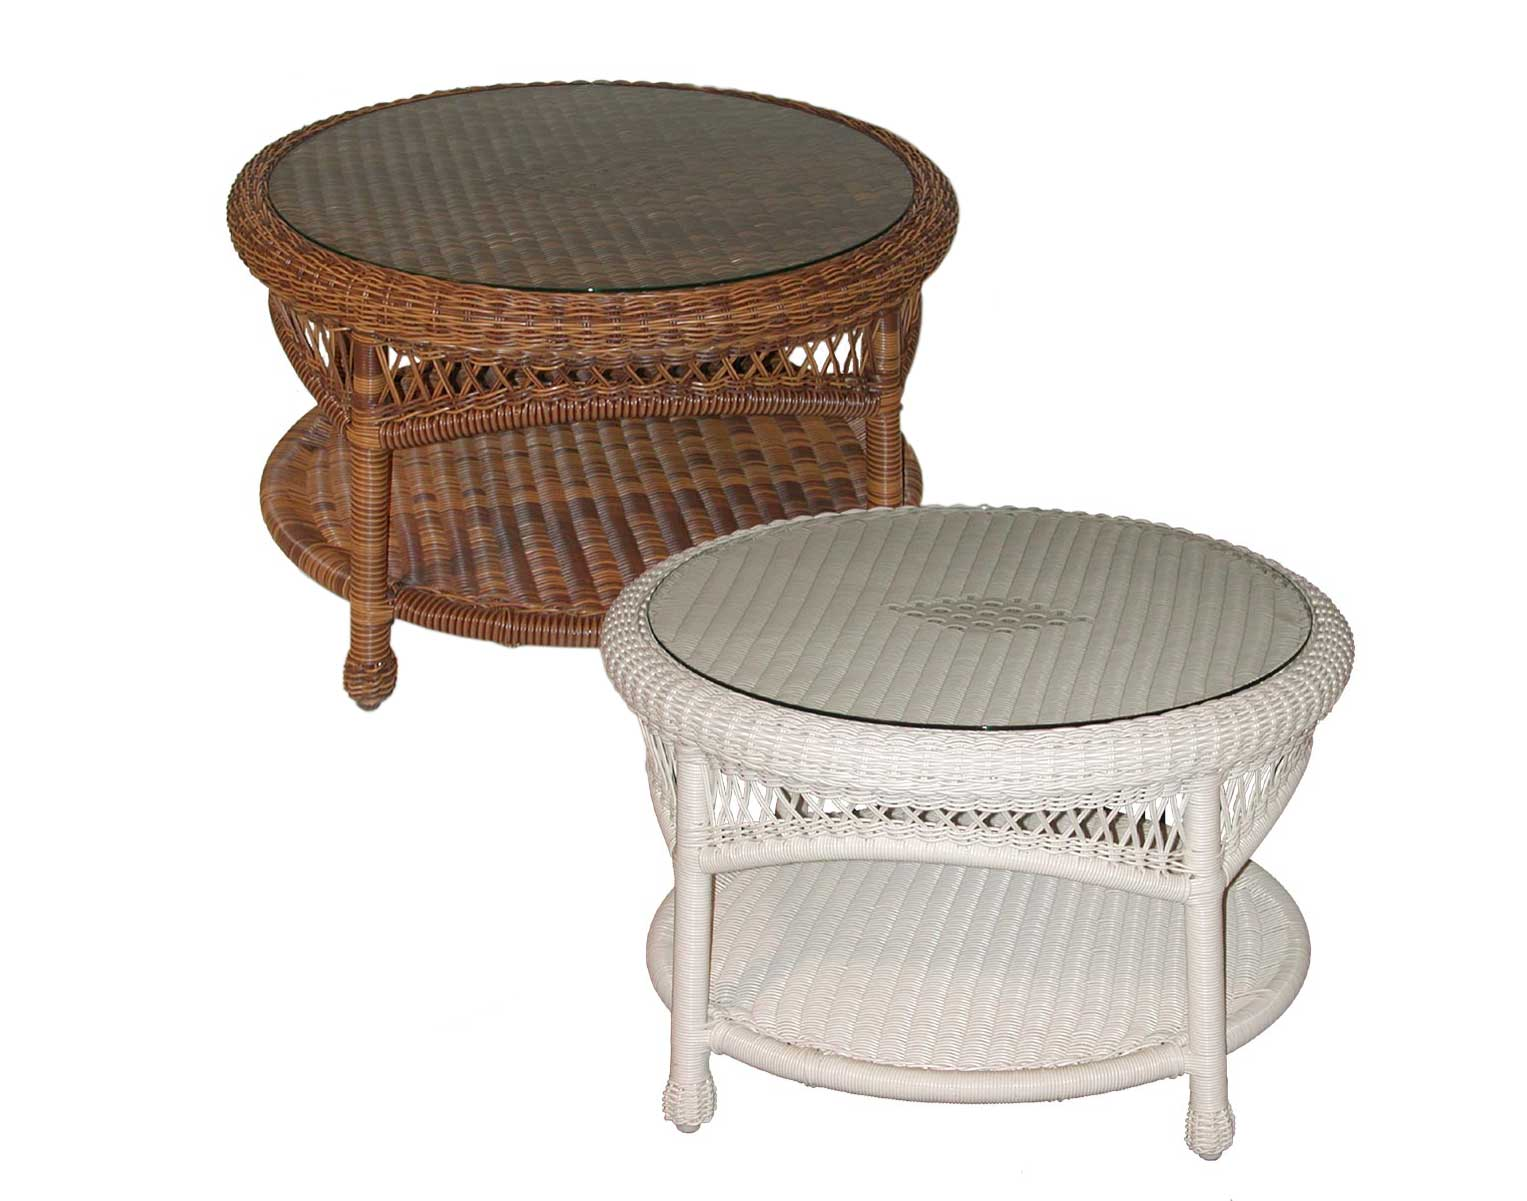 Wicker sands round coffee table Rattan round coffee table